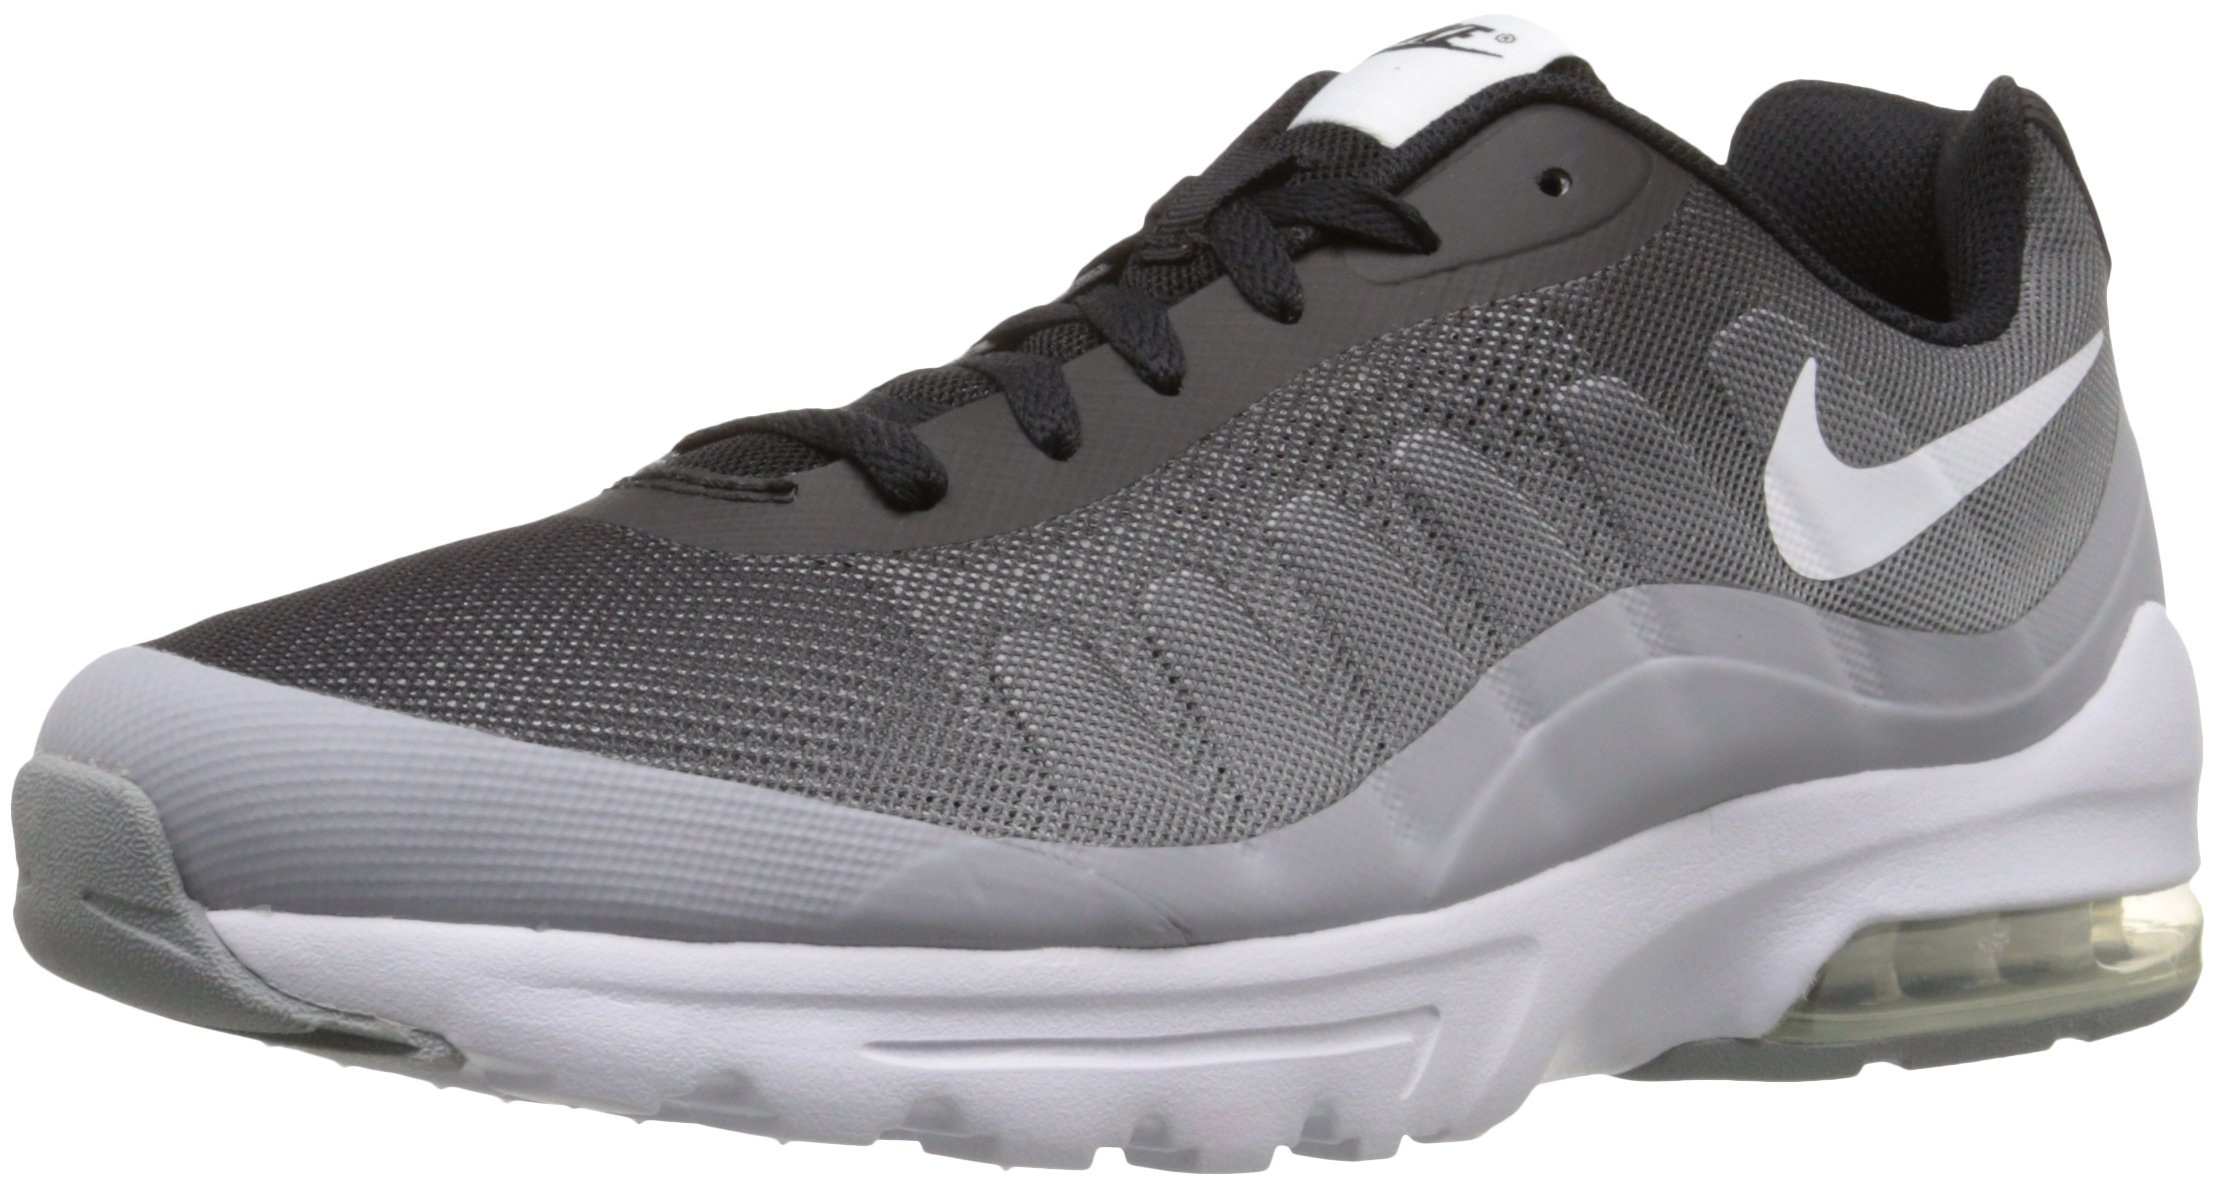 buy online 64035 a458c Galleon - NIKE Men s Air Max Invigor Print Running Shoe, Black White Wolf  Grey, 14 D(M) US